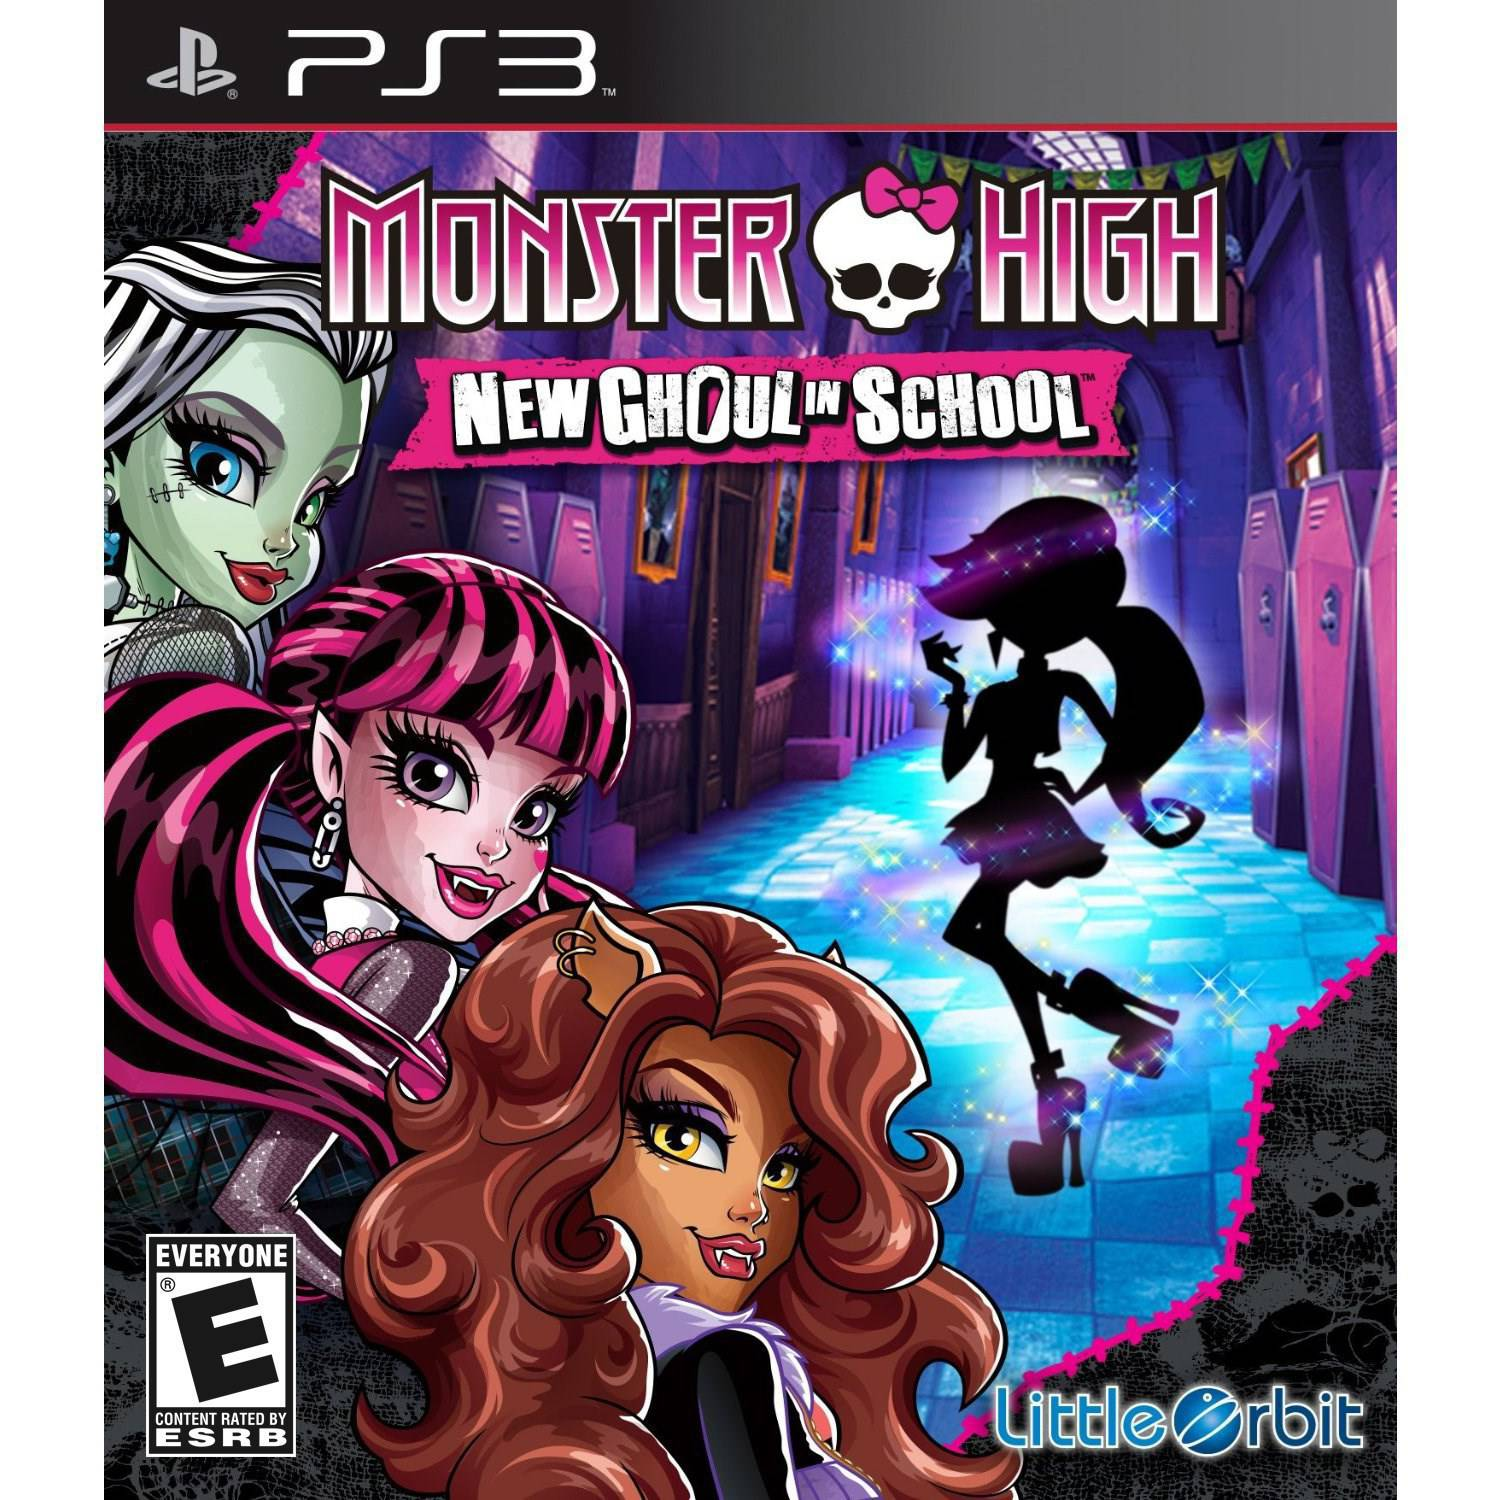 Monster High New Ghoul (PS3) - Pre-Owned